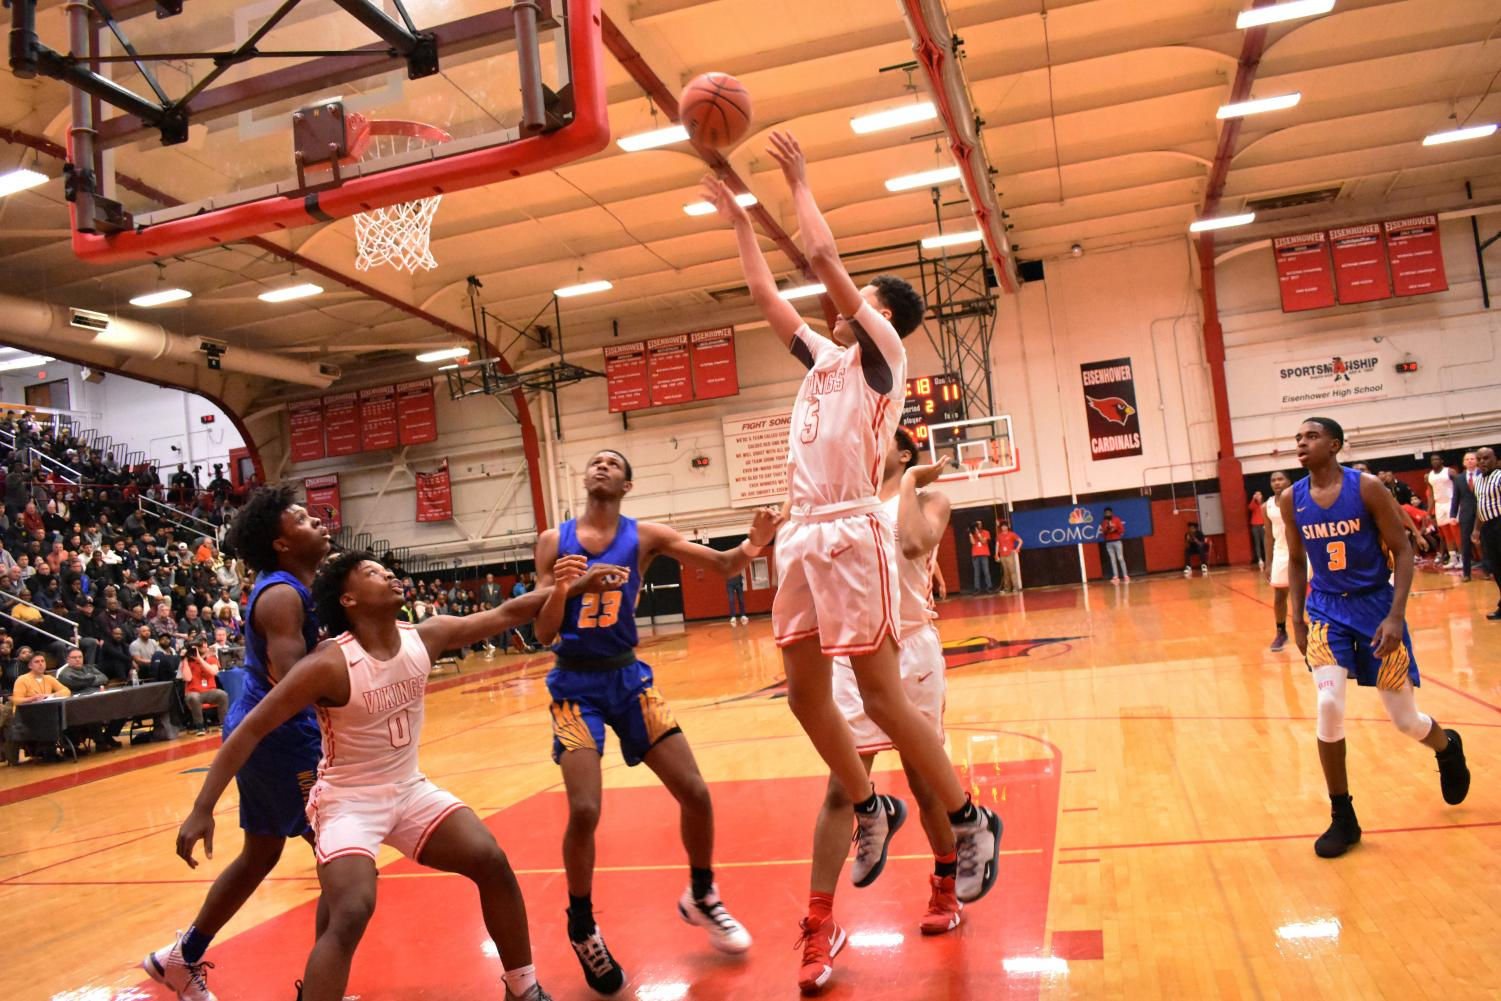 More than a shooter             Senior guard Trace Williams goes up for a layup during H-F's loss against Simeon in the Class 4A Eisenhower Sectional championship. Williams chipped in 12 points.